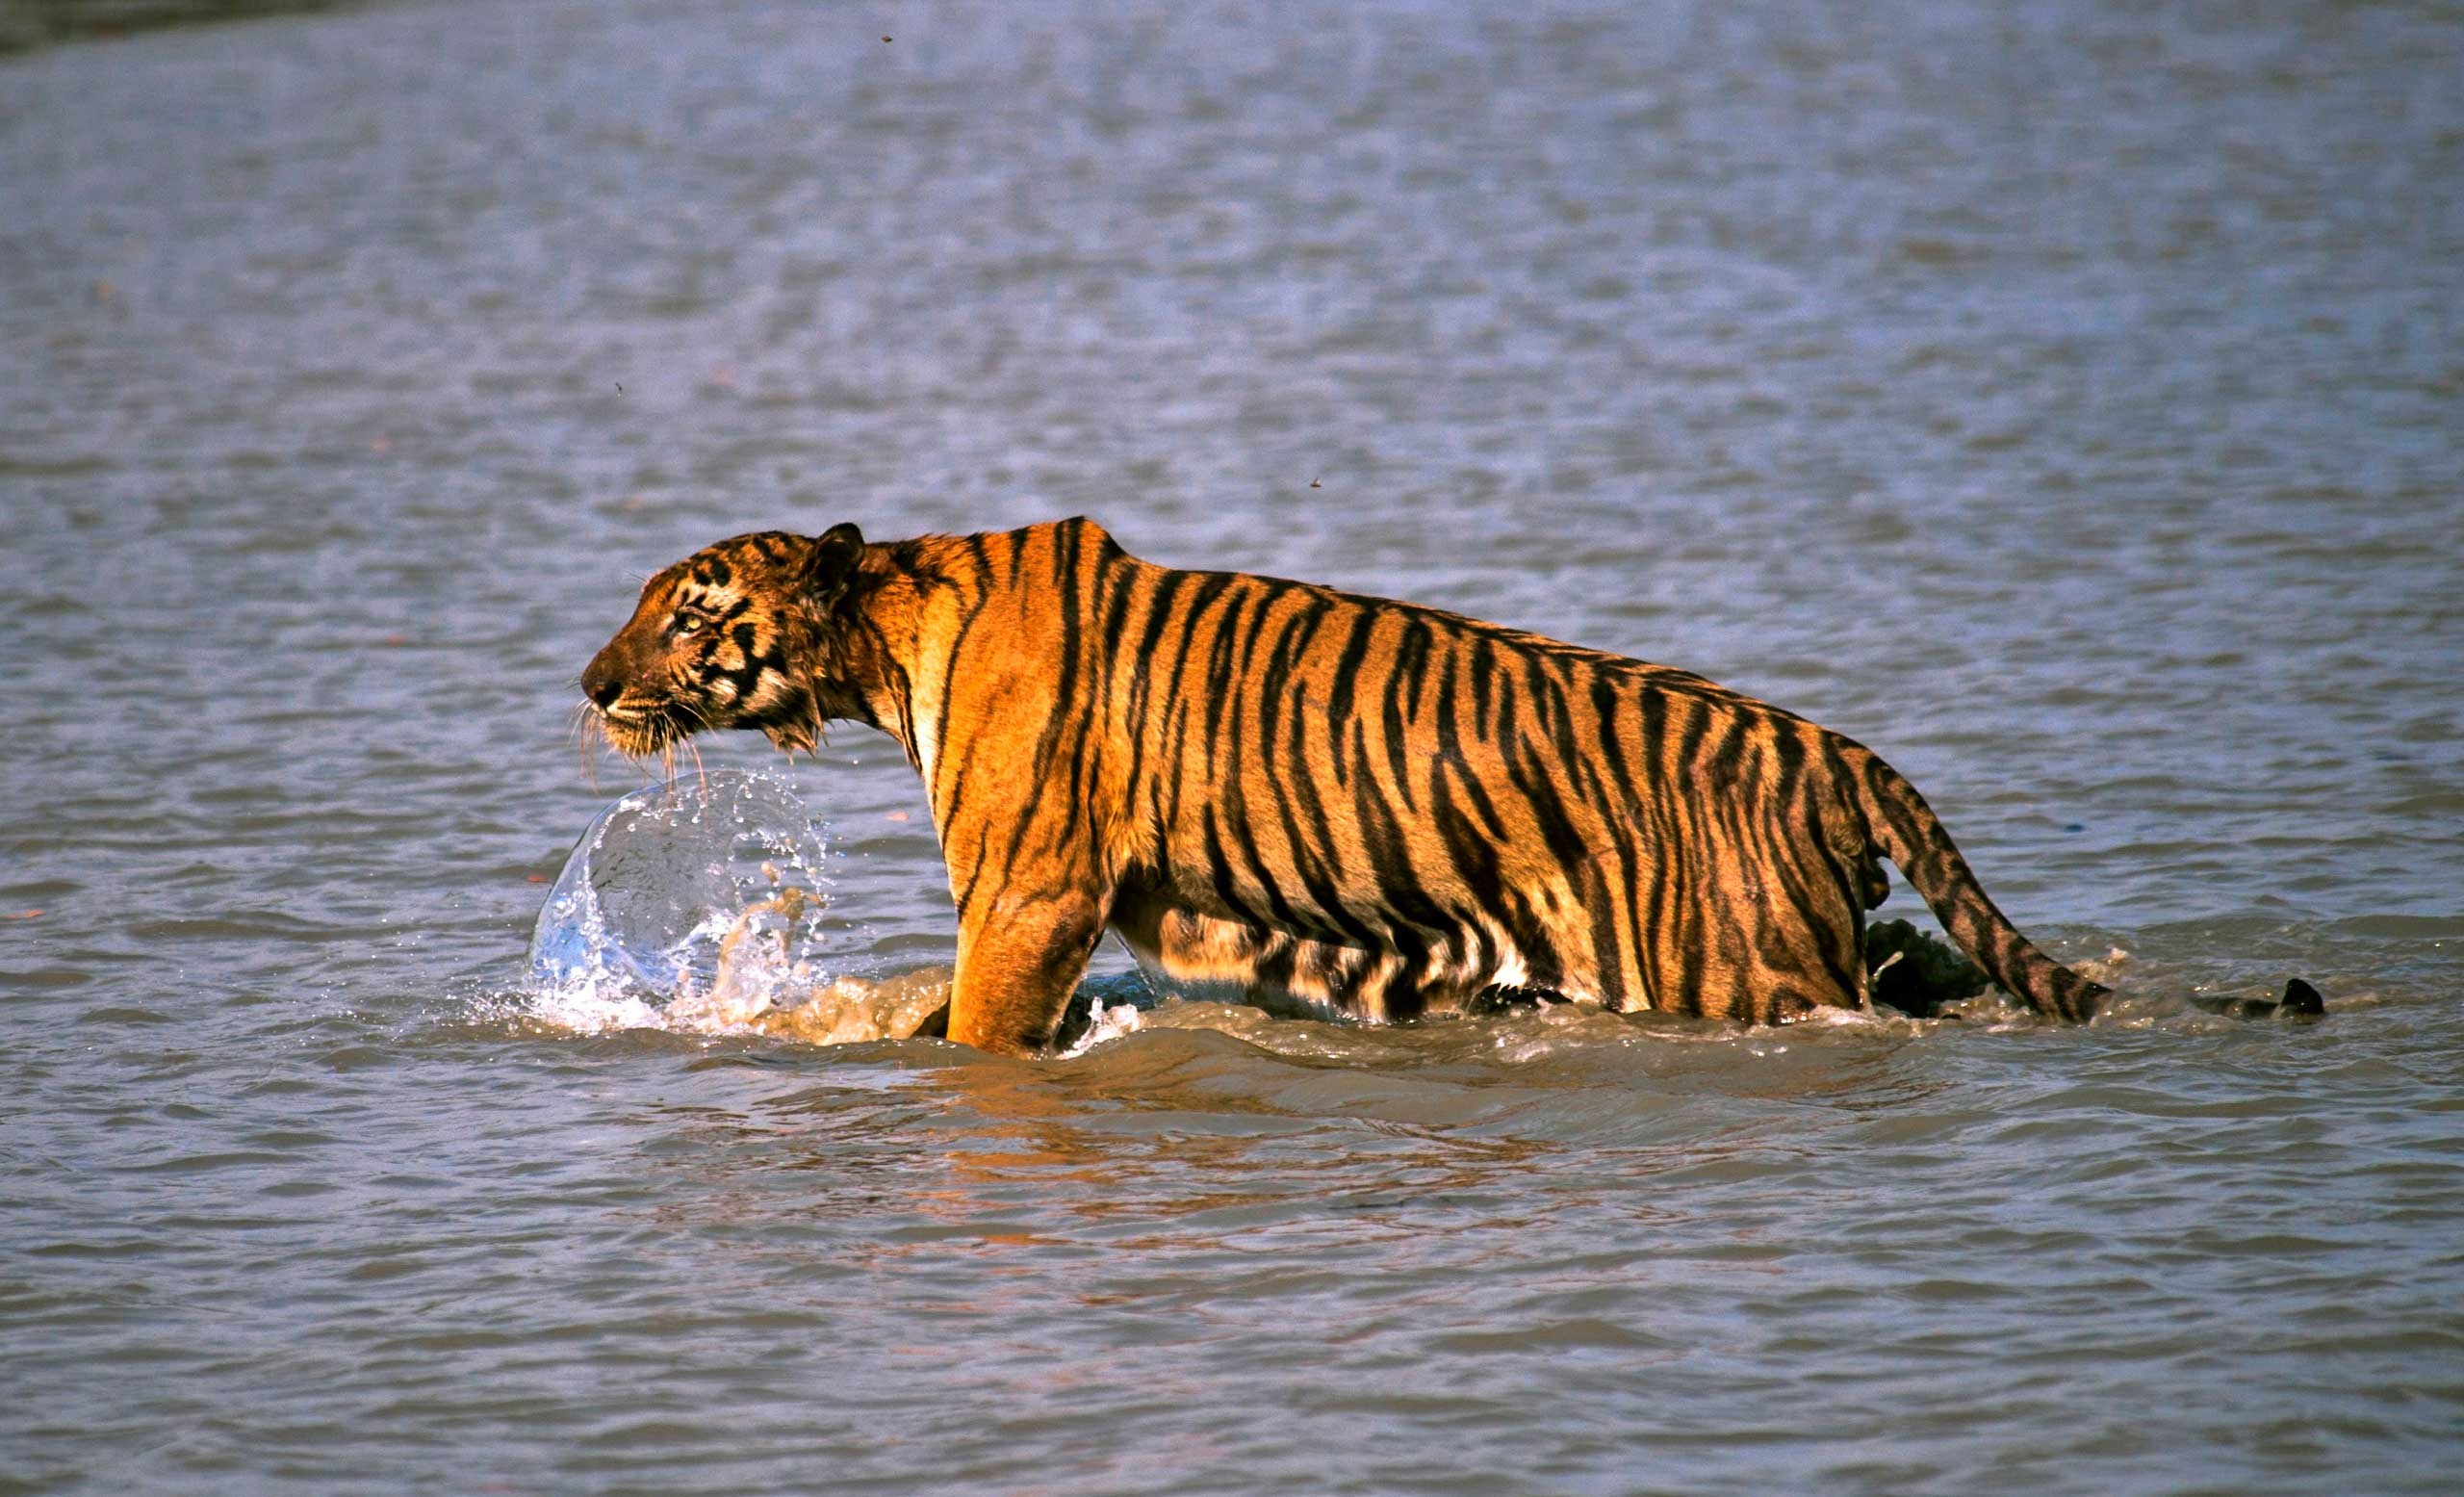 Hire a car and driver in Sunderban